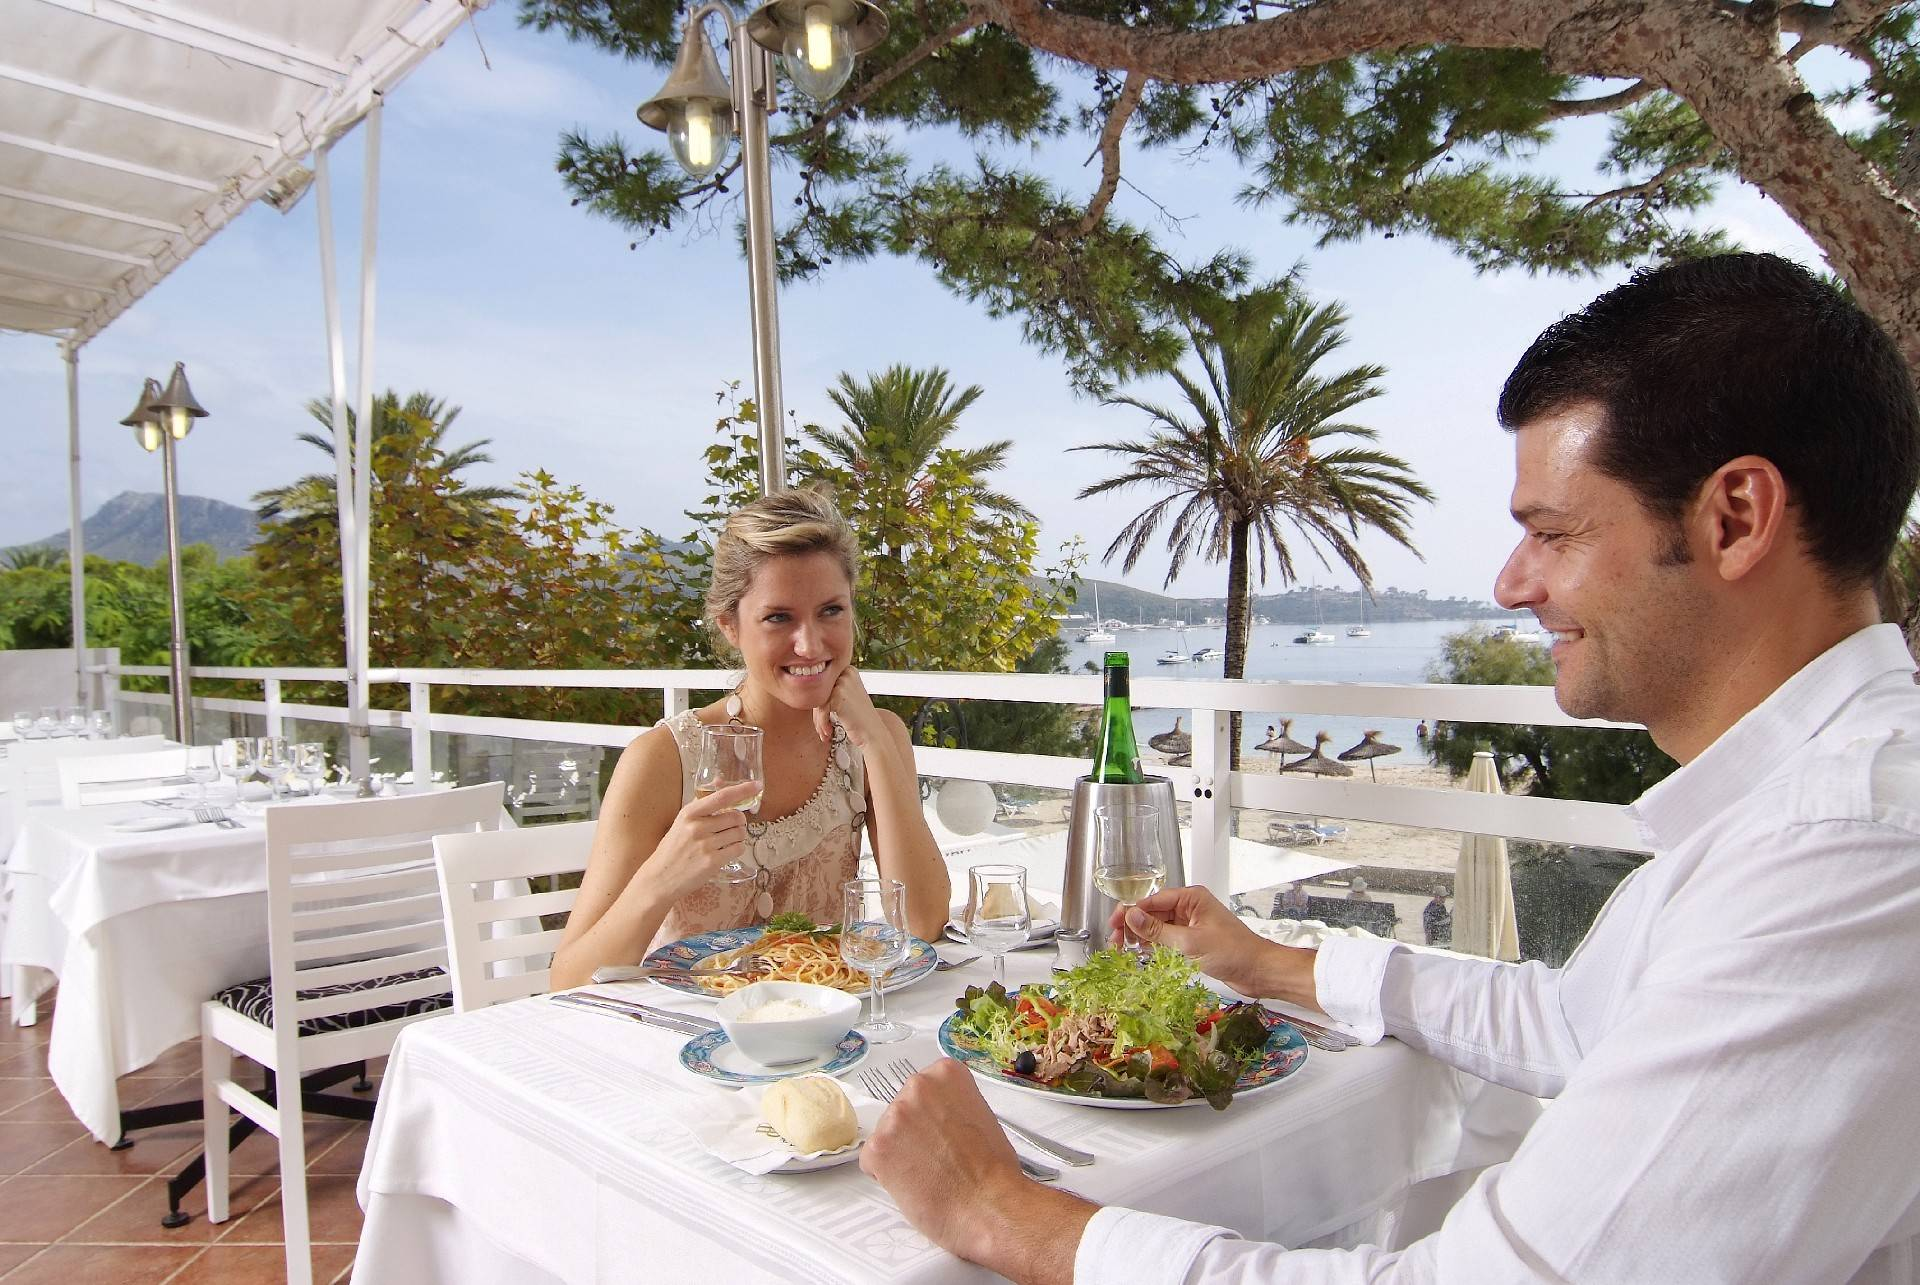 hotel-daina-restaurant-terrace-with-sea-view--by-hoposa-daina